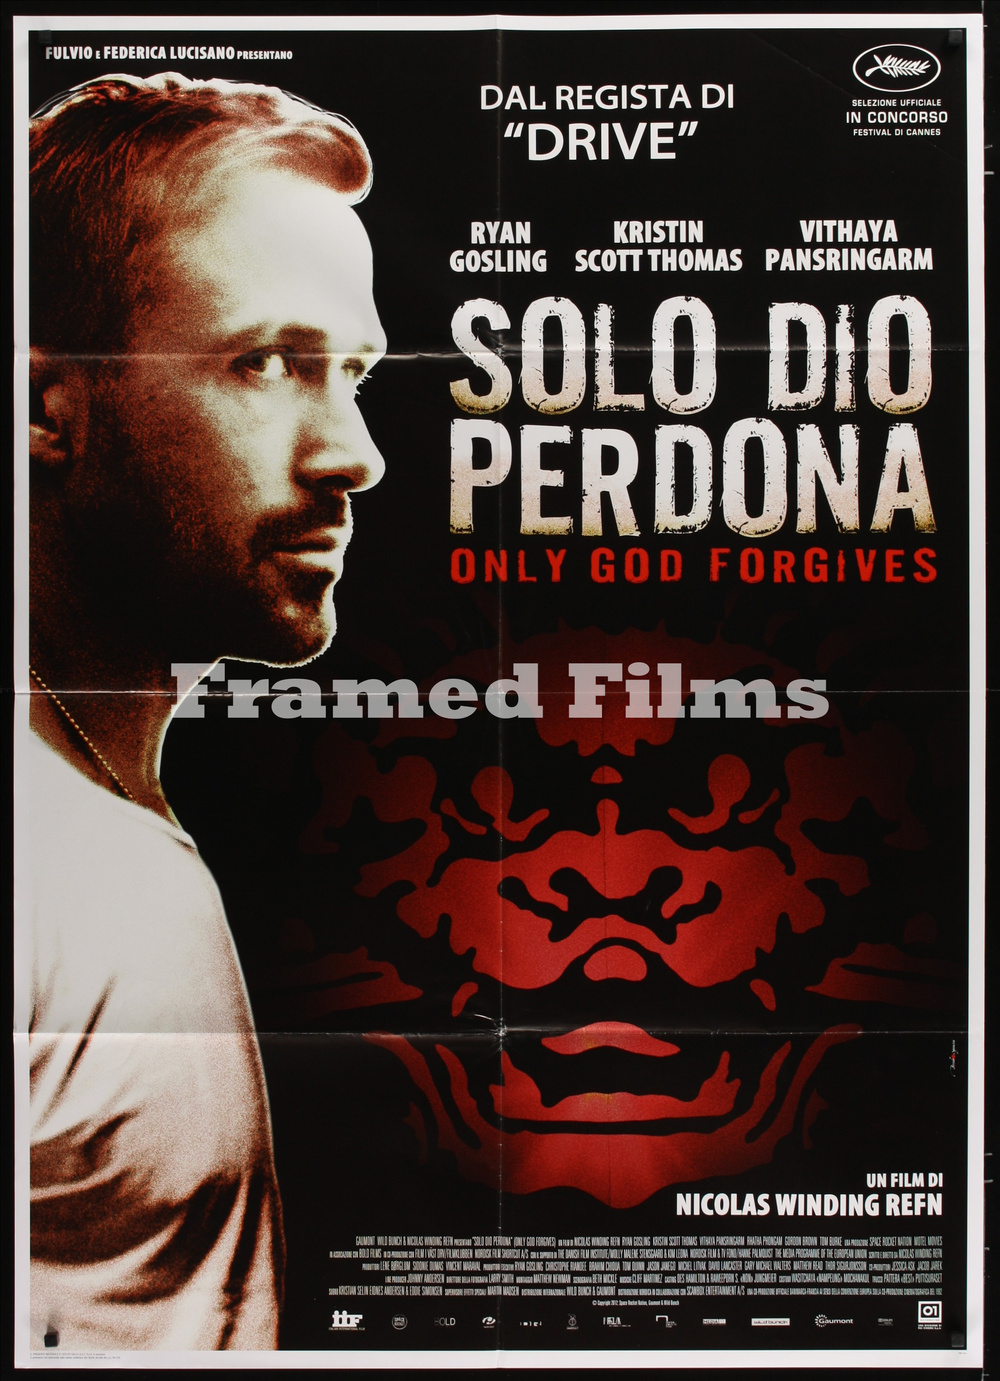 italian_1p_only_god_forgives_MF02068_L.jpg